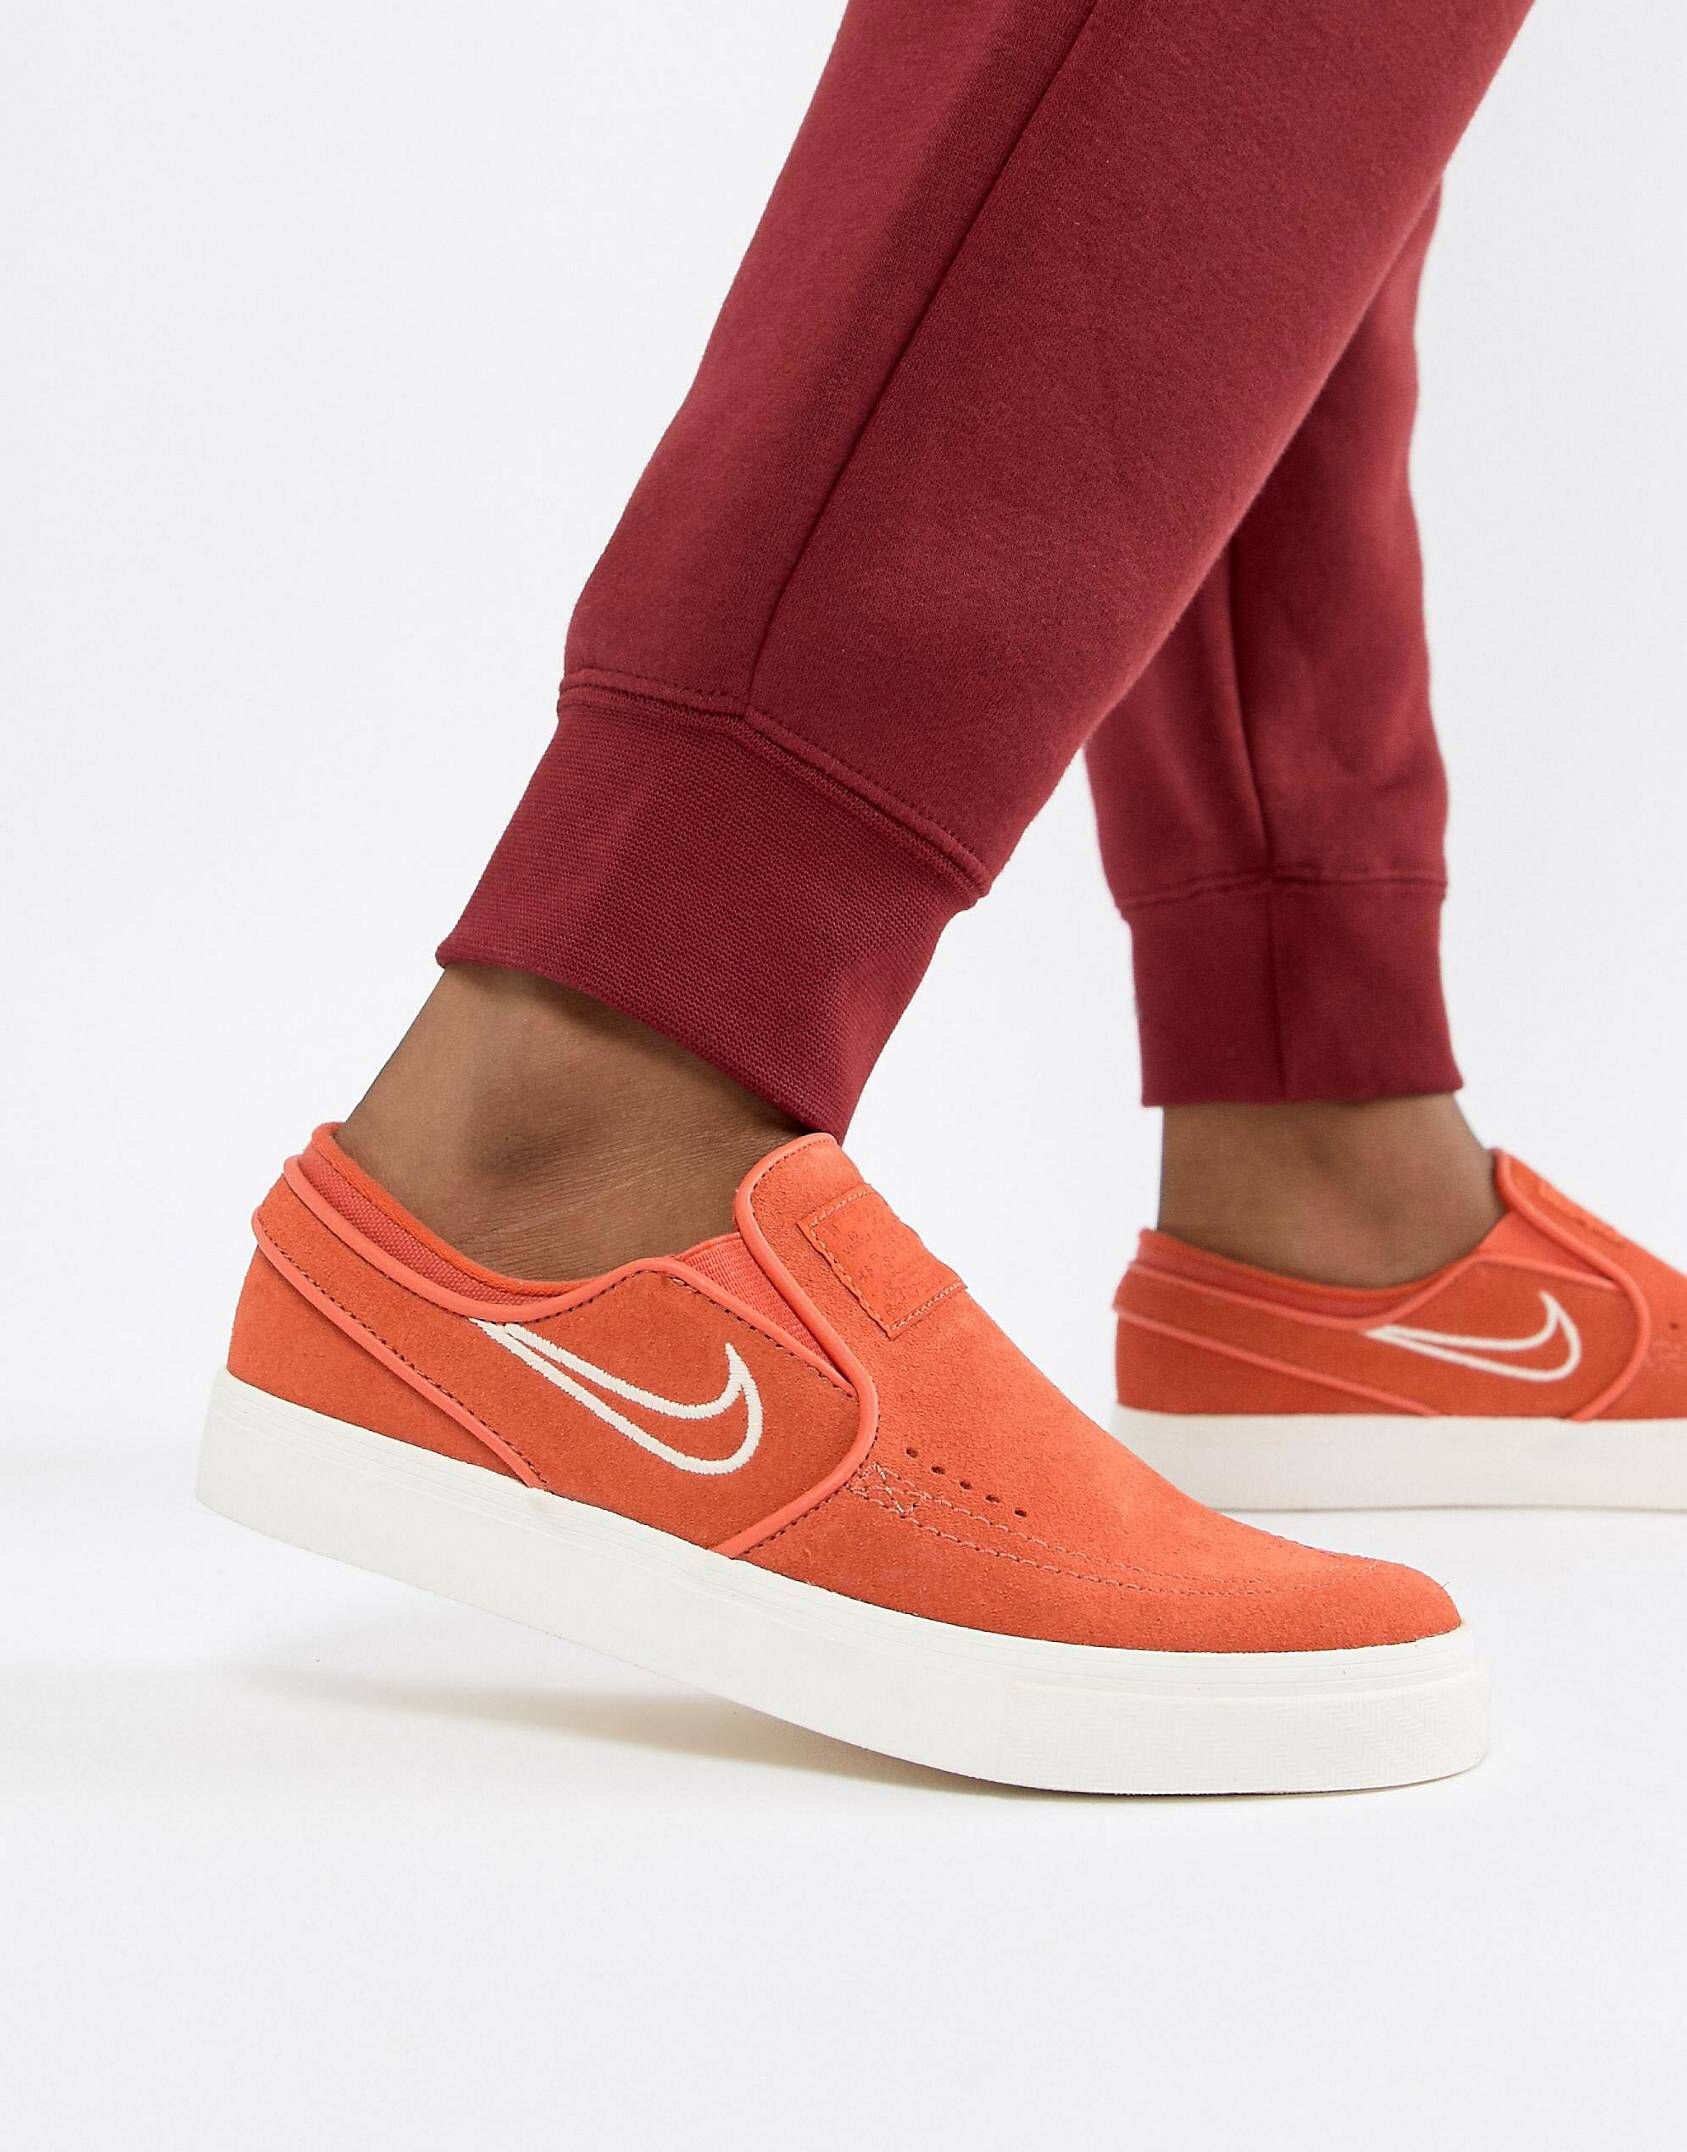 buy popular 12733 bfc3f Just when I thought I didn t need something new from ASOS, I kinda do